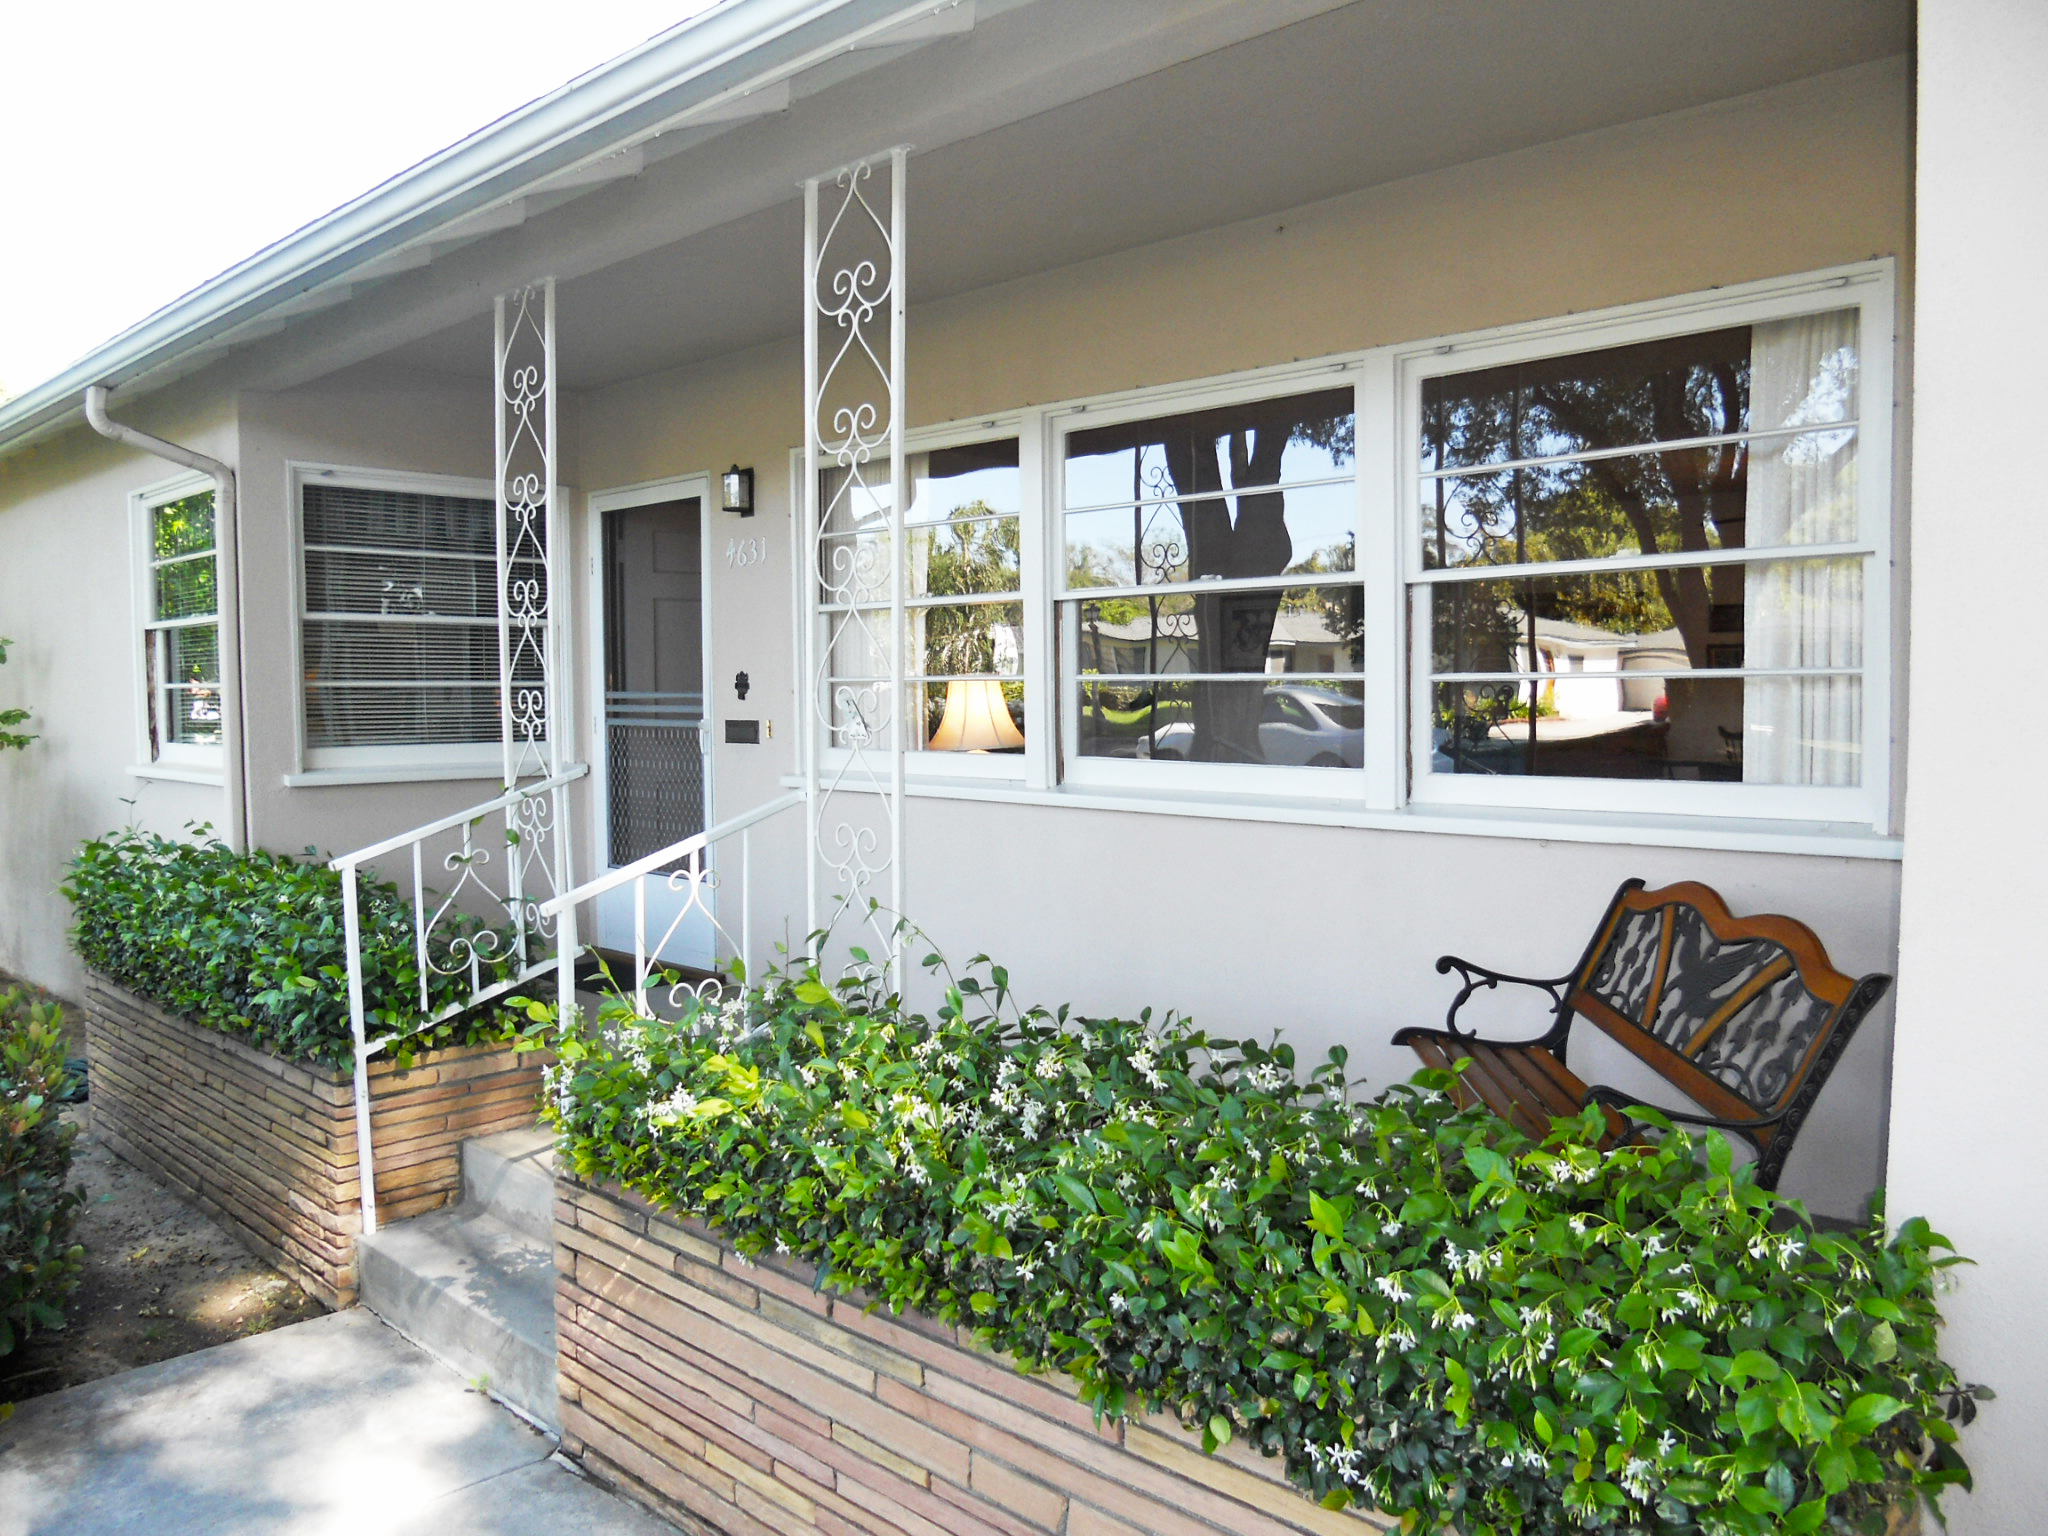 What a lovely front porch! So clean, convenient, and charming! Talk about curb appeal!